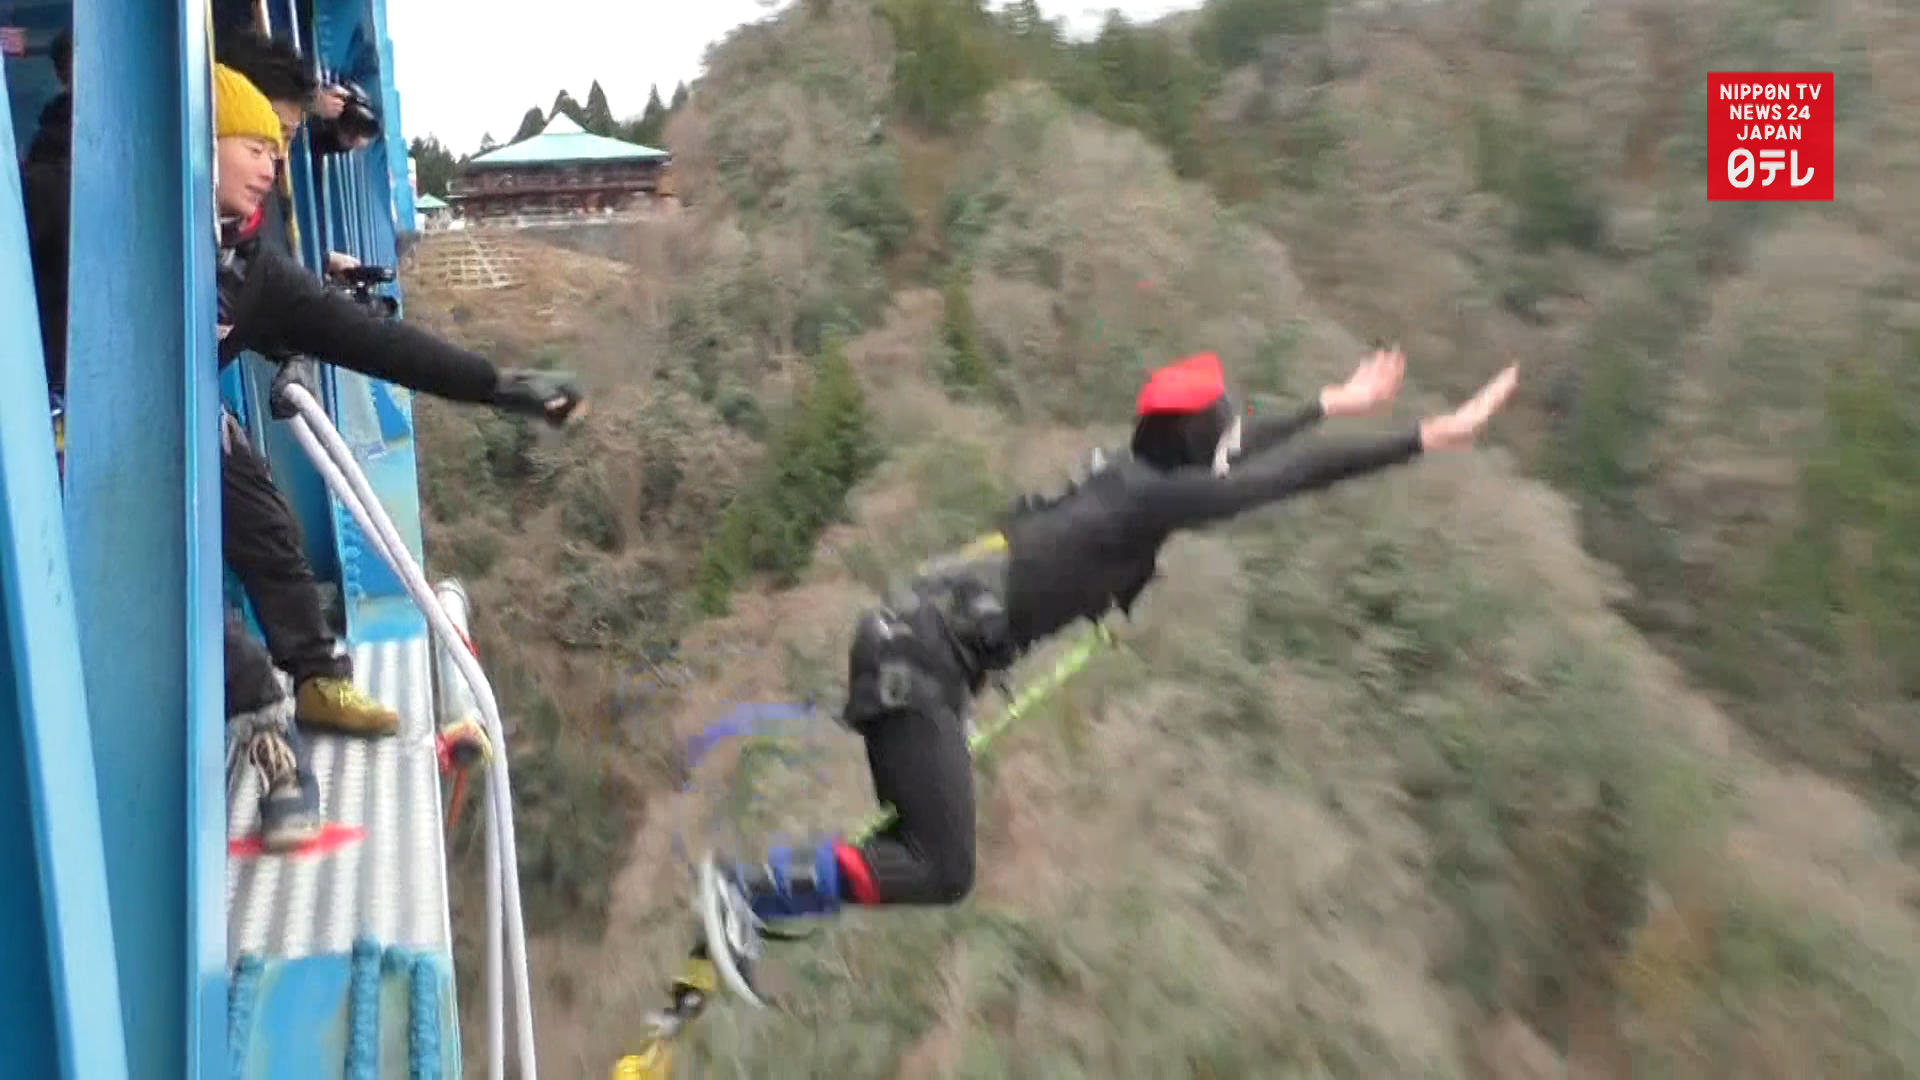 Bungee jumping to adulthood